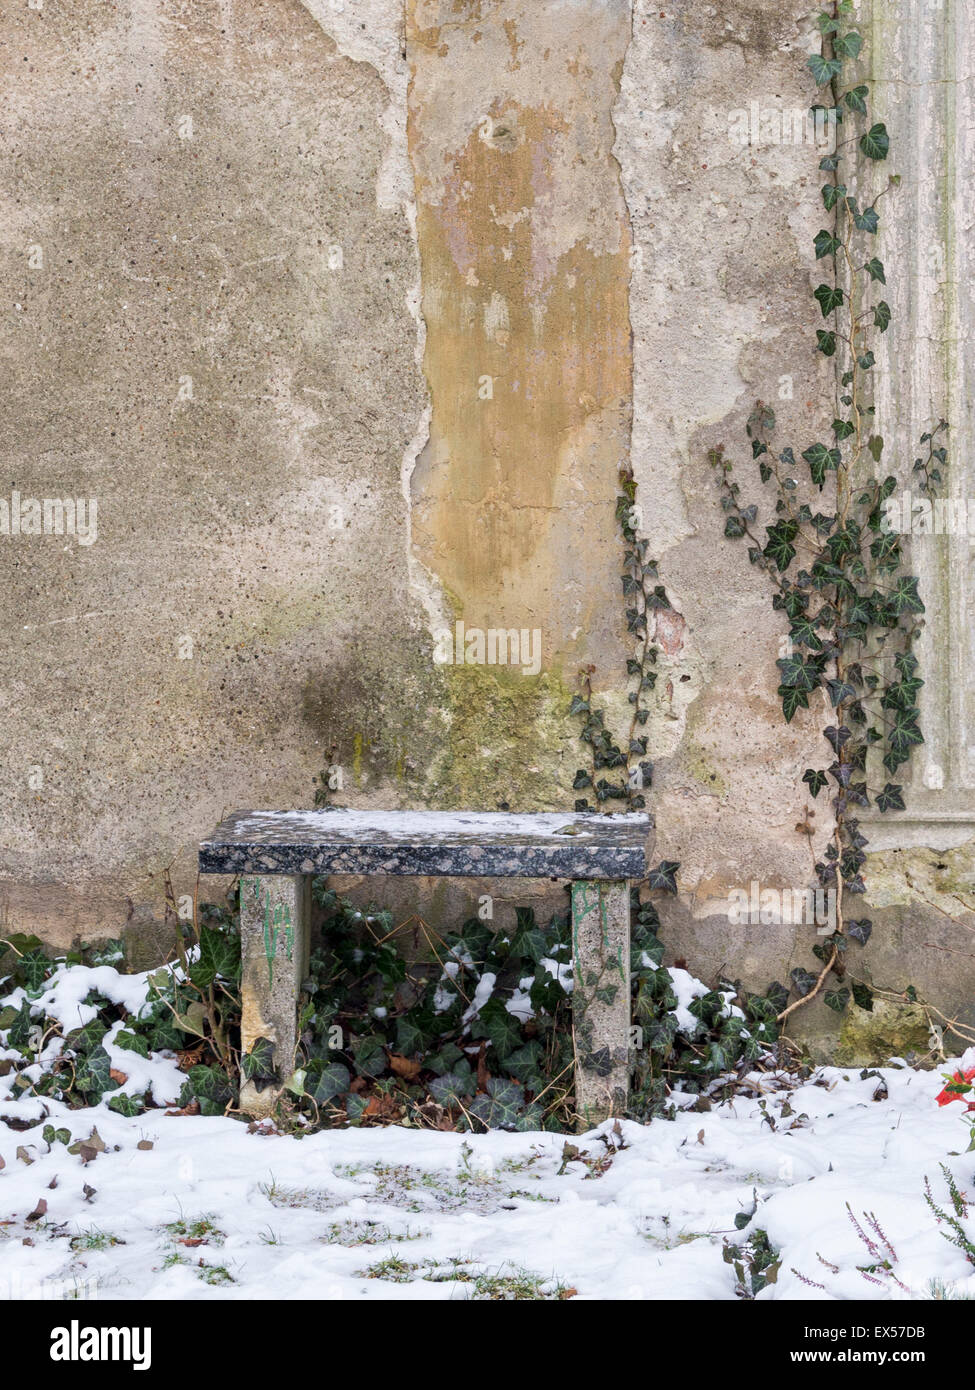 Stone bench, creeper and old cracked wall in winter - Friedhof der Sophien Gemeinde, Berlin cemetery. - Stock Image